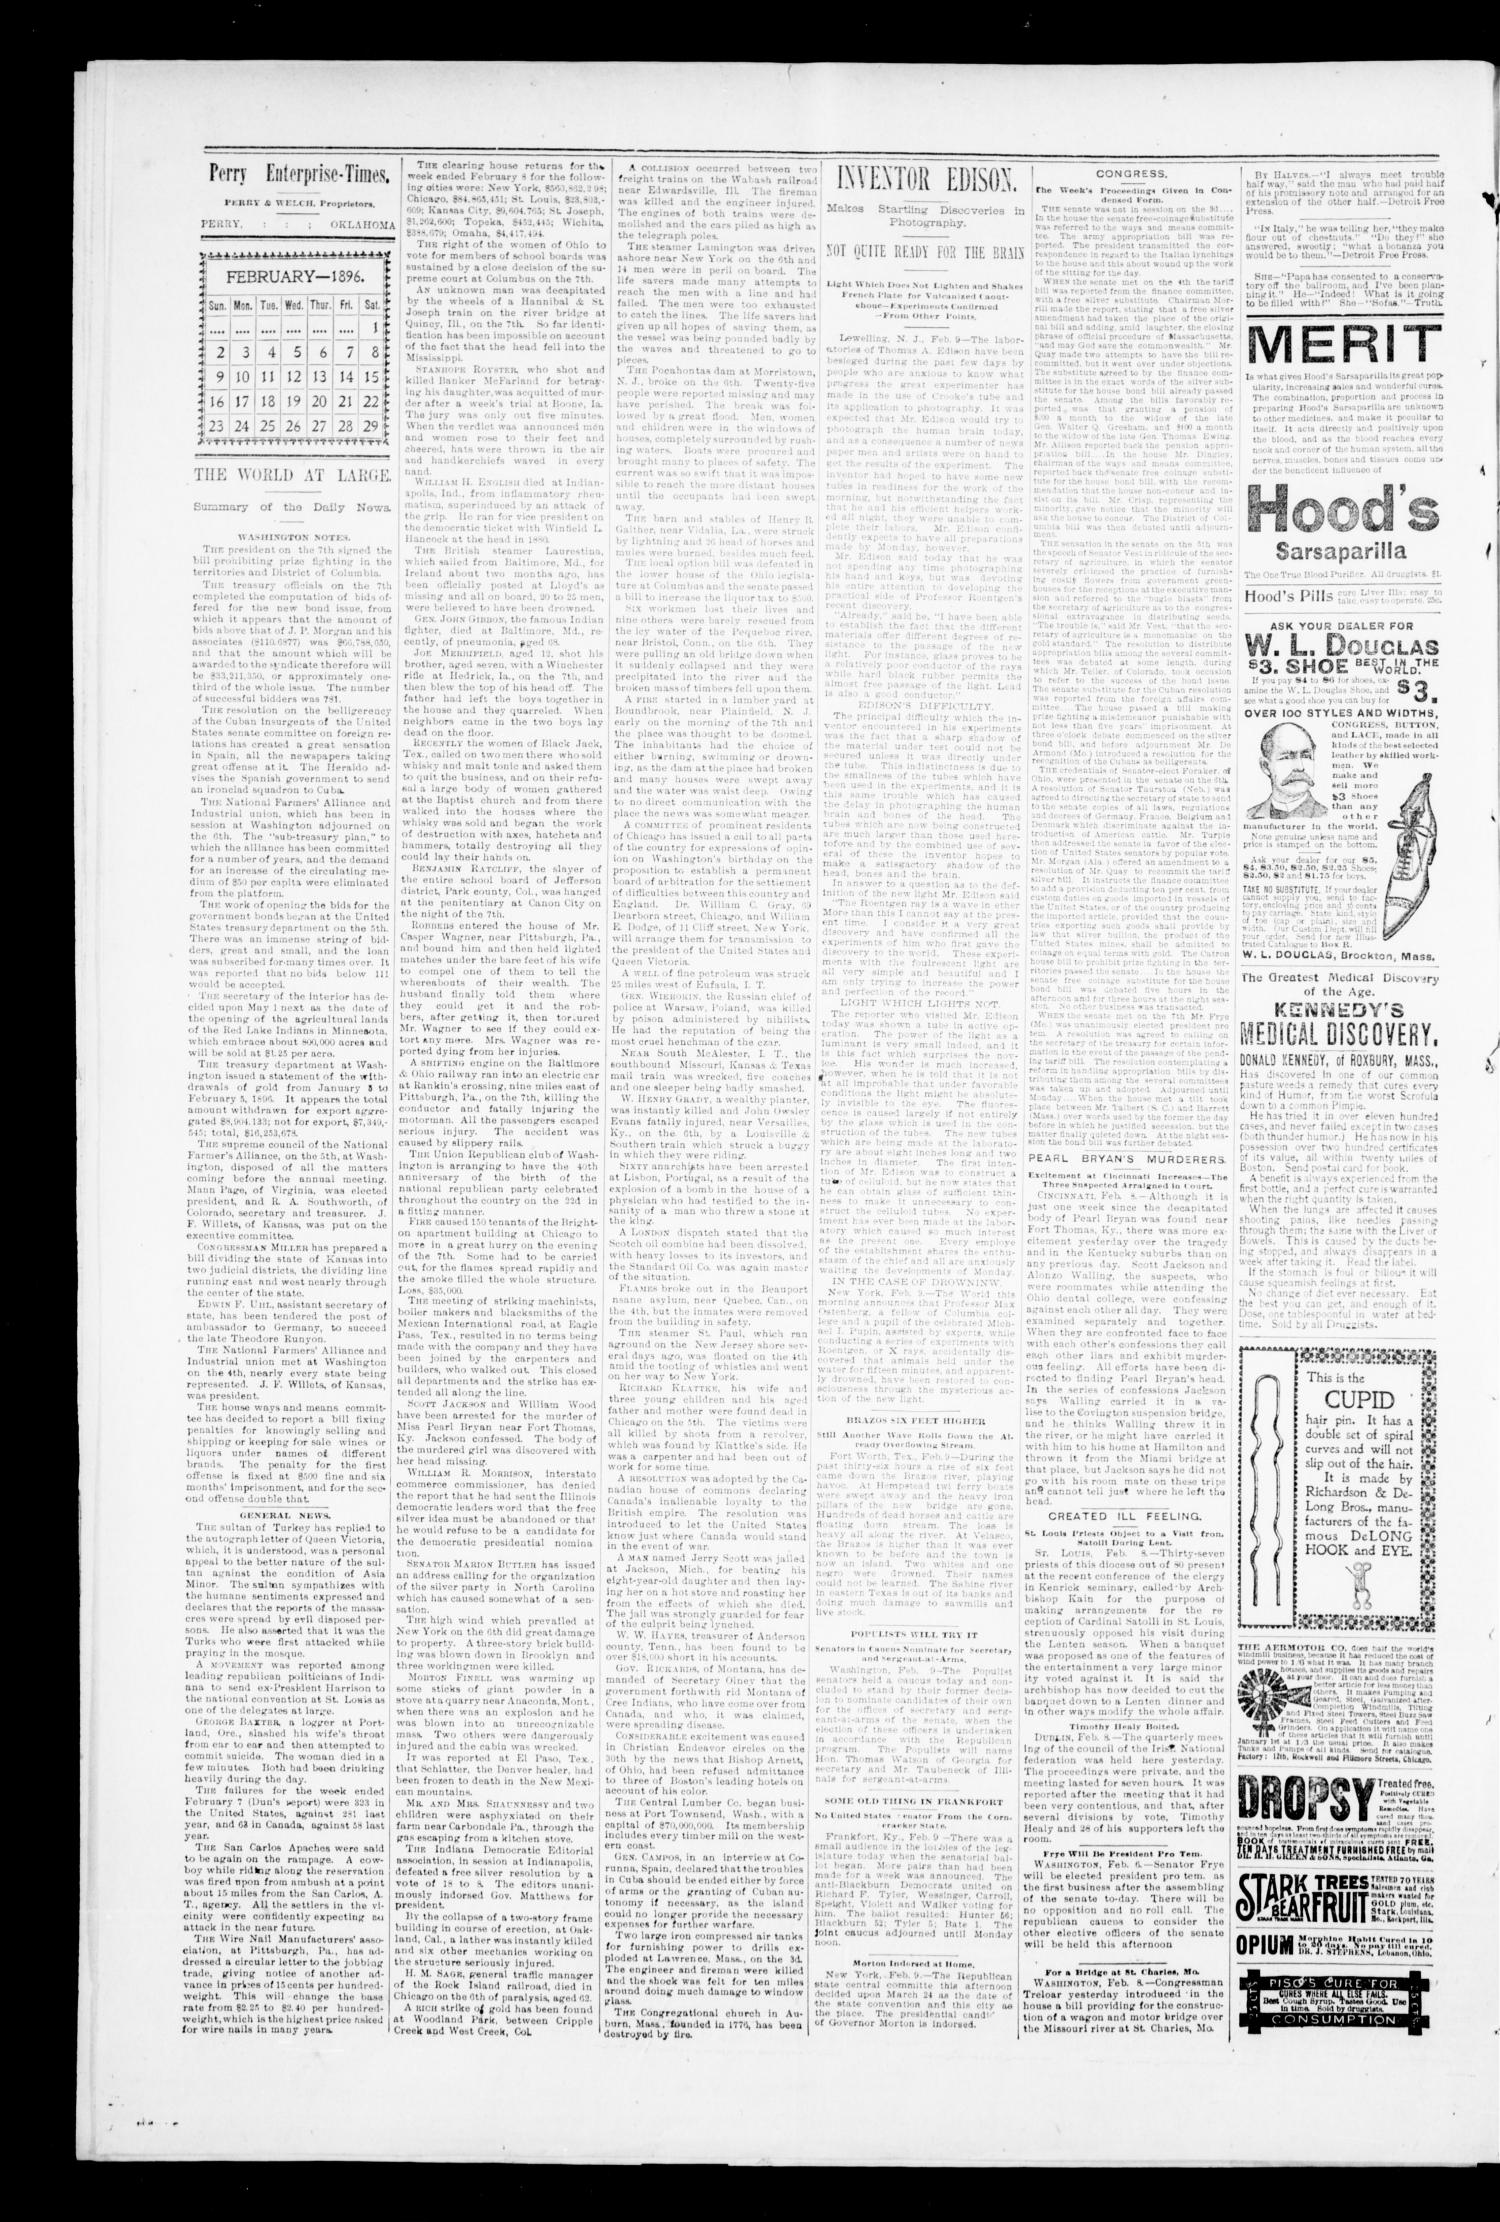 Perry Enterprise-Times. (Perry, Okla.), Vol. 2, No. 24, Ed. 1 Thursday, February 13, 1896                                                                                                      [Sequence #]: 4 of 8